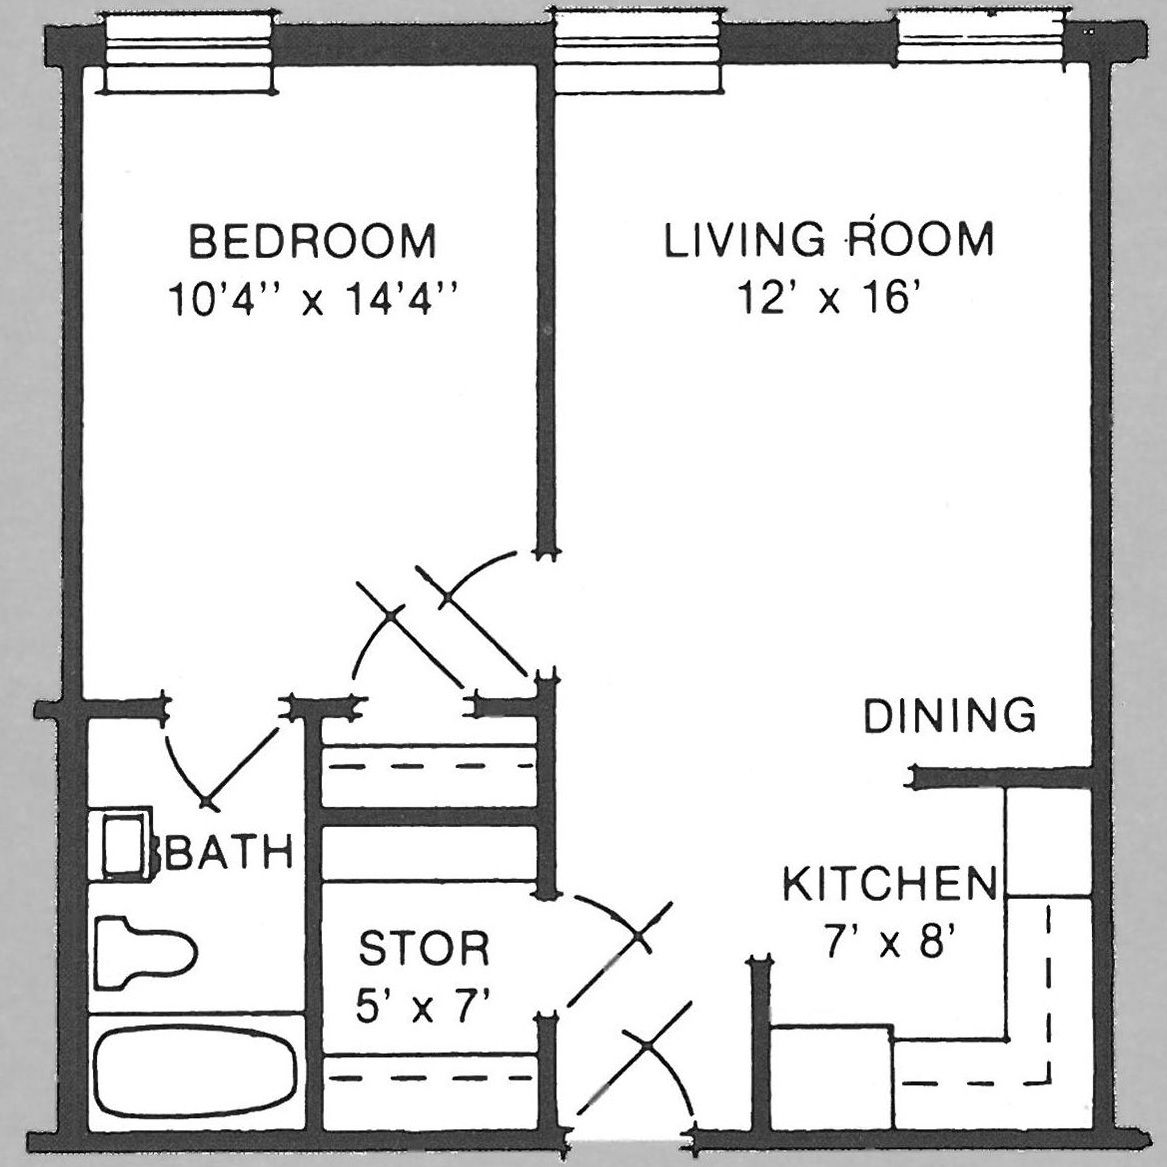 500 Sqft 2 Bedroom Apartment Ideas Square Foot House Plan With Loft Studio Apartment Floor Plans Basement House Plans